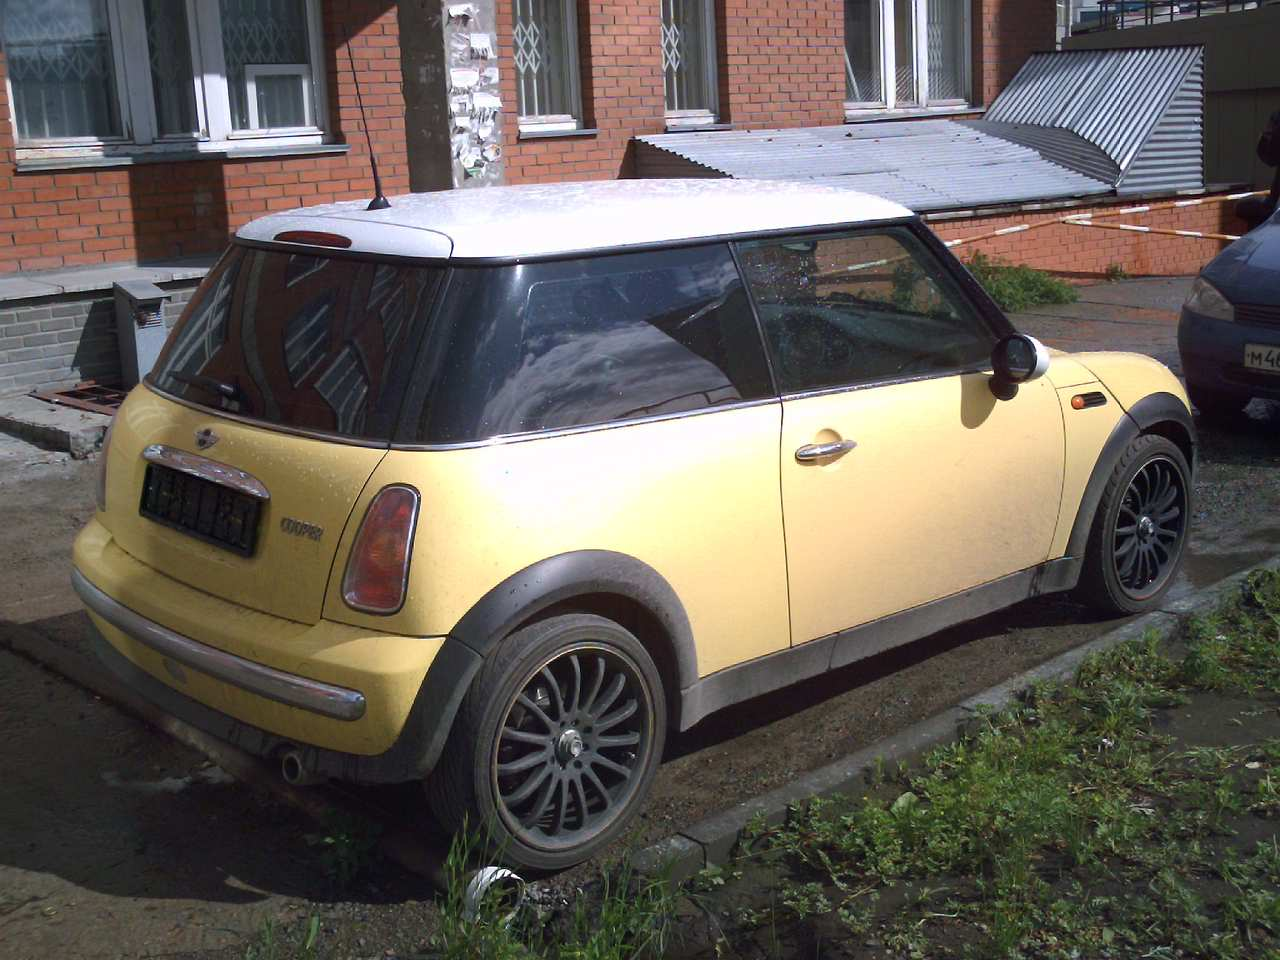 2002 mini cooper pictures gasoline fr or rr automatic for sale. Black Bedroom Furniture Sets. Home Design Ideas